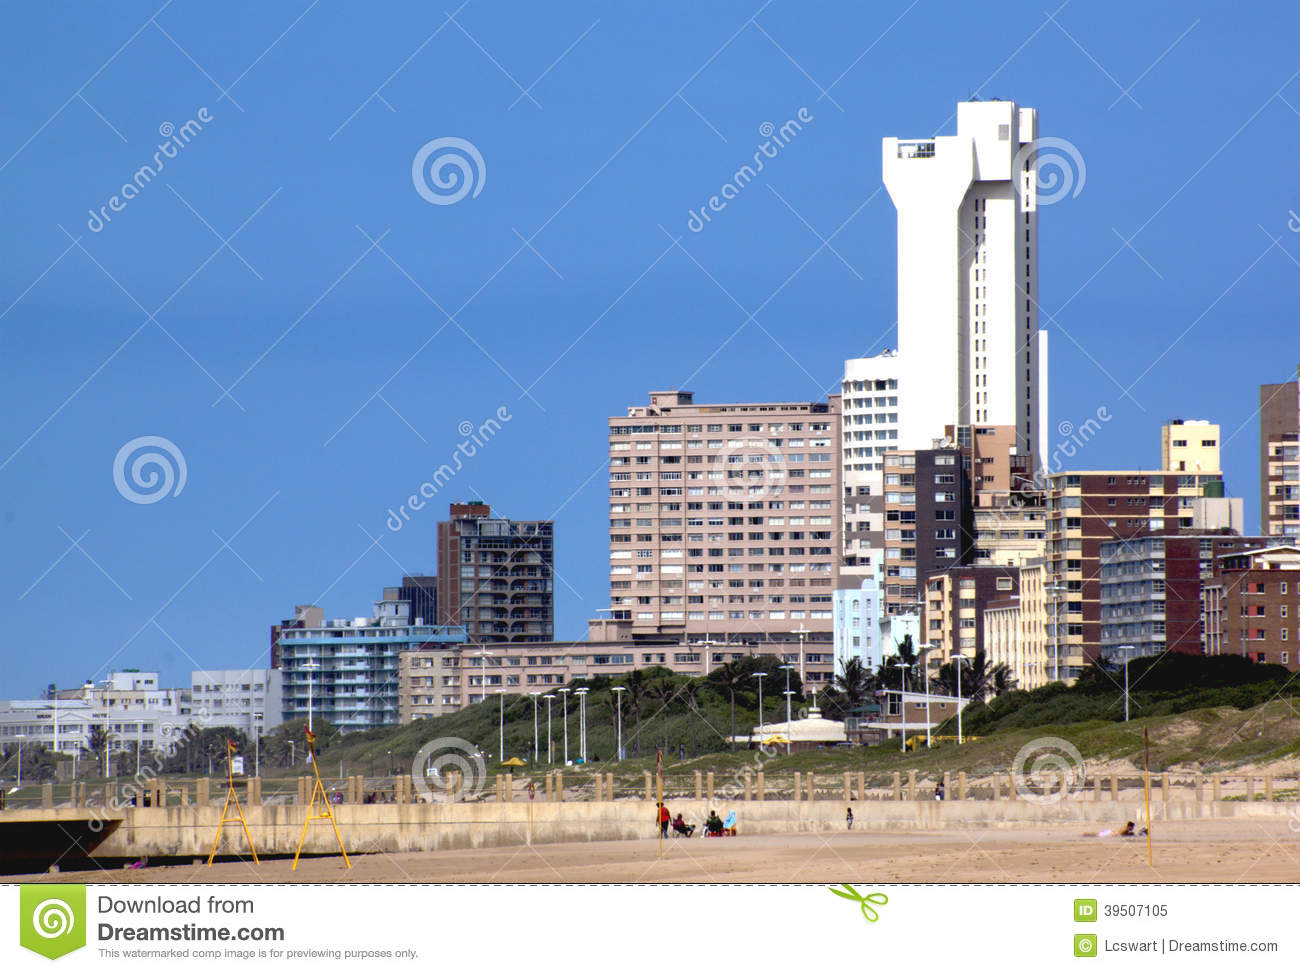 View of Hotels and Residential Buildings from Durban Beach